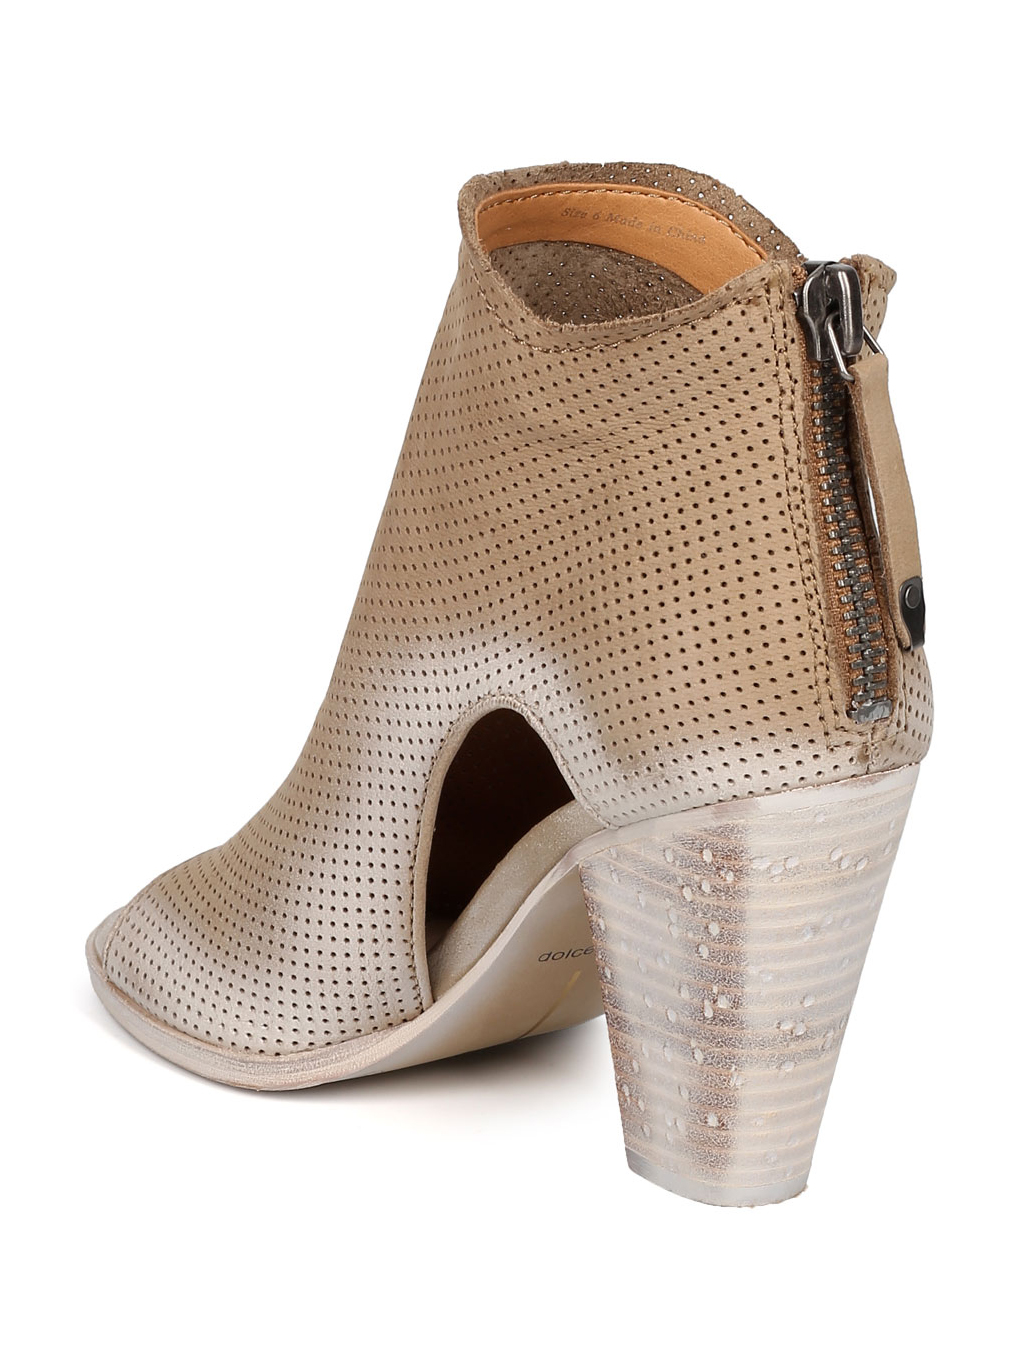 Women Nubuck Perforated Chunky Heel Bootie - Casual, Ankle Versatile, Dressy - Cutout Ankle Casual, Boot - Harem By Dolce Vita 7076e4